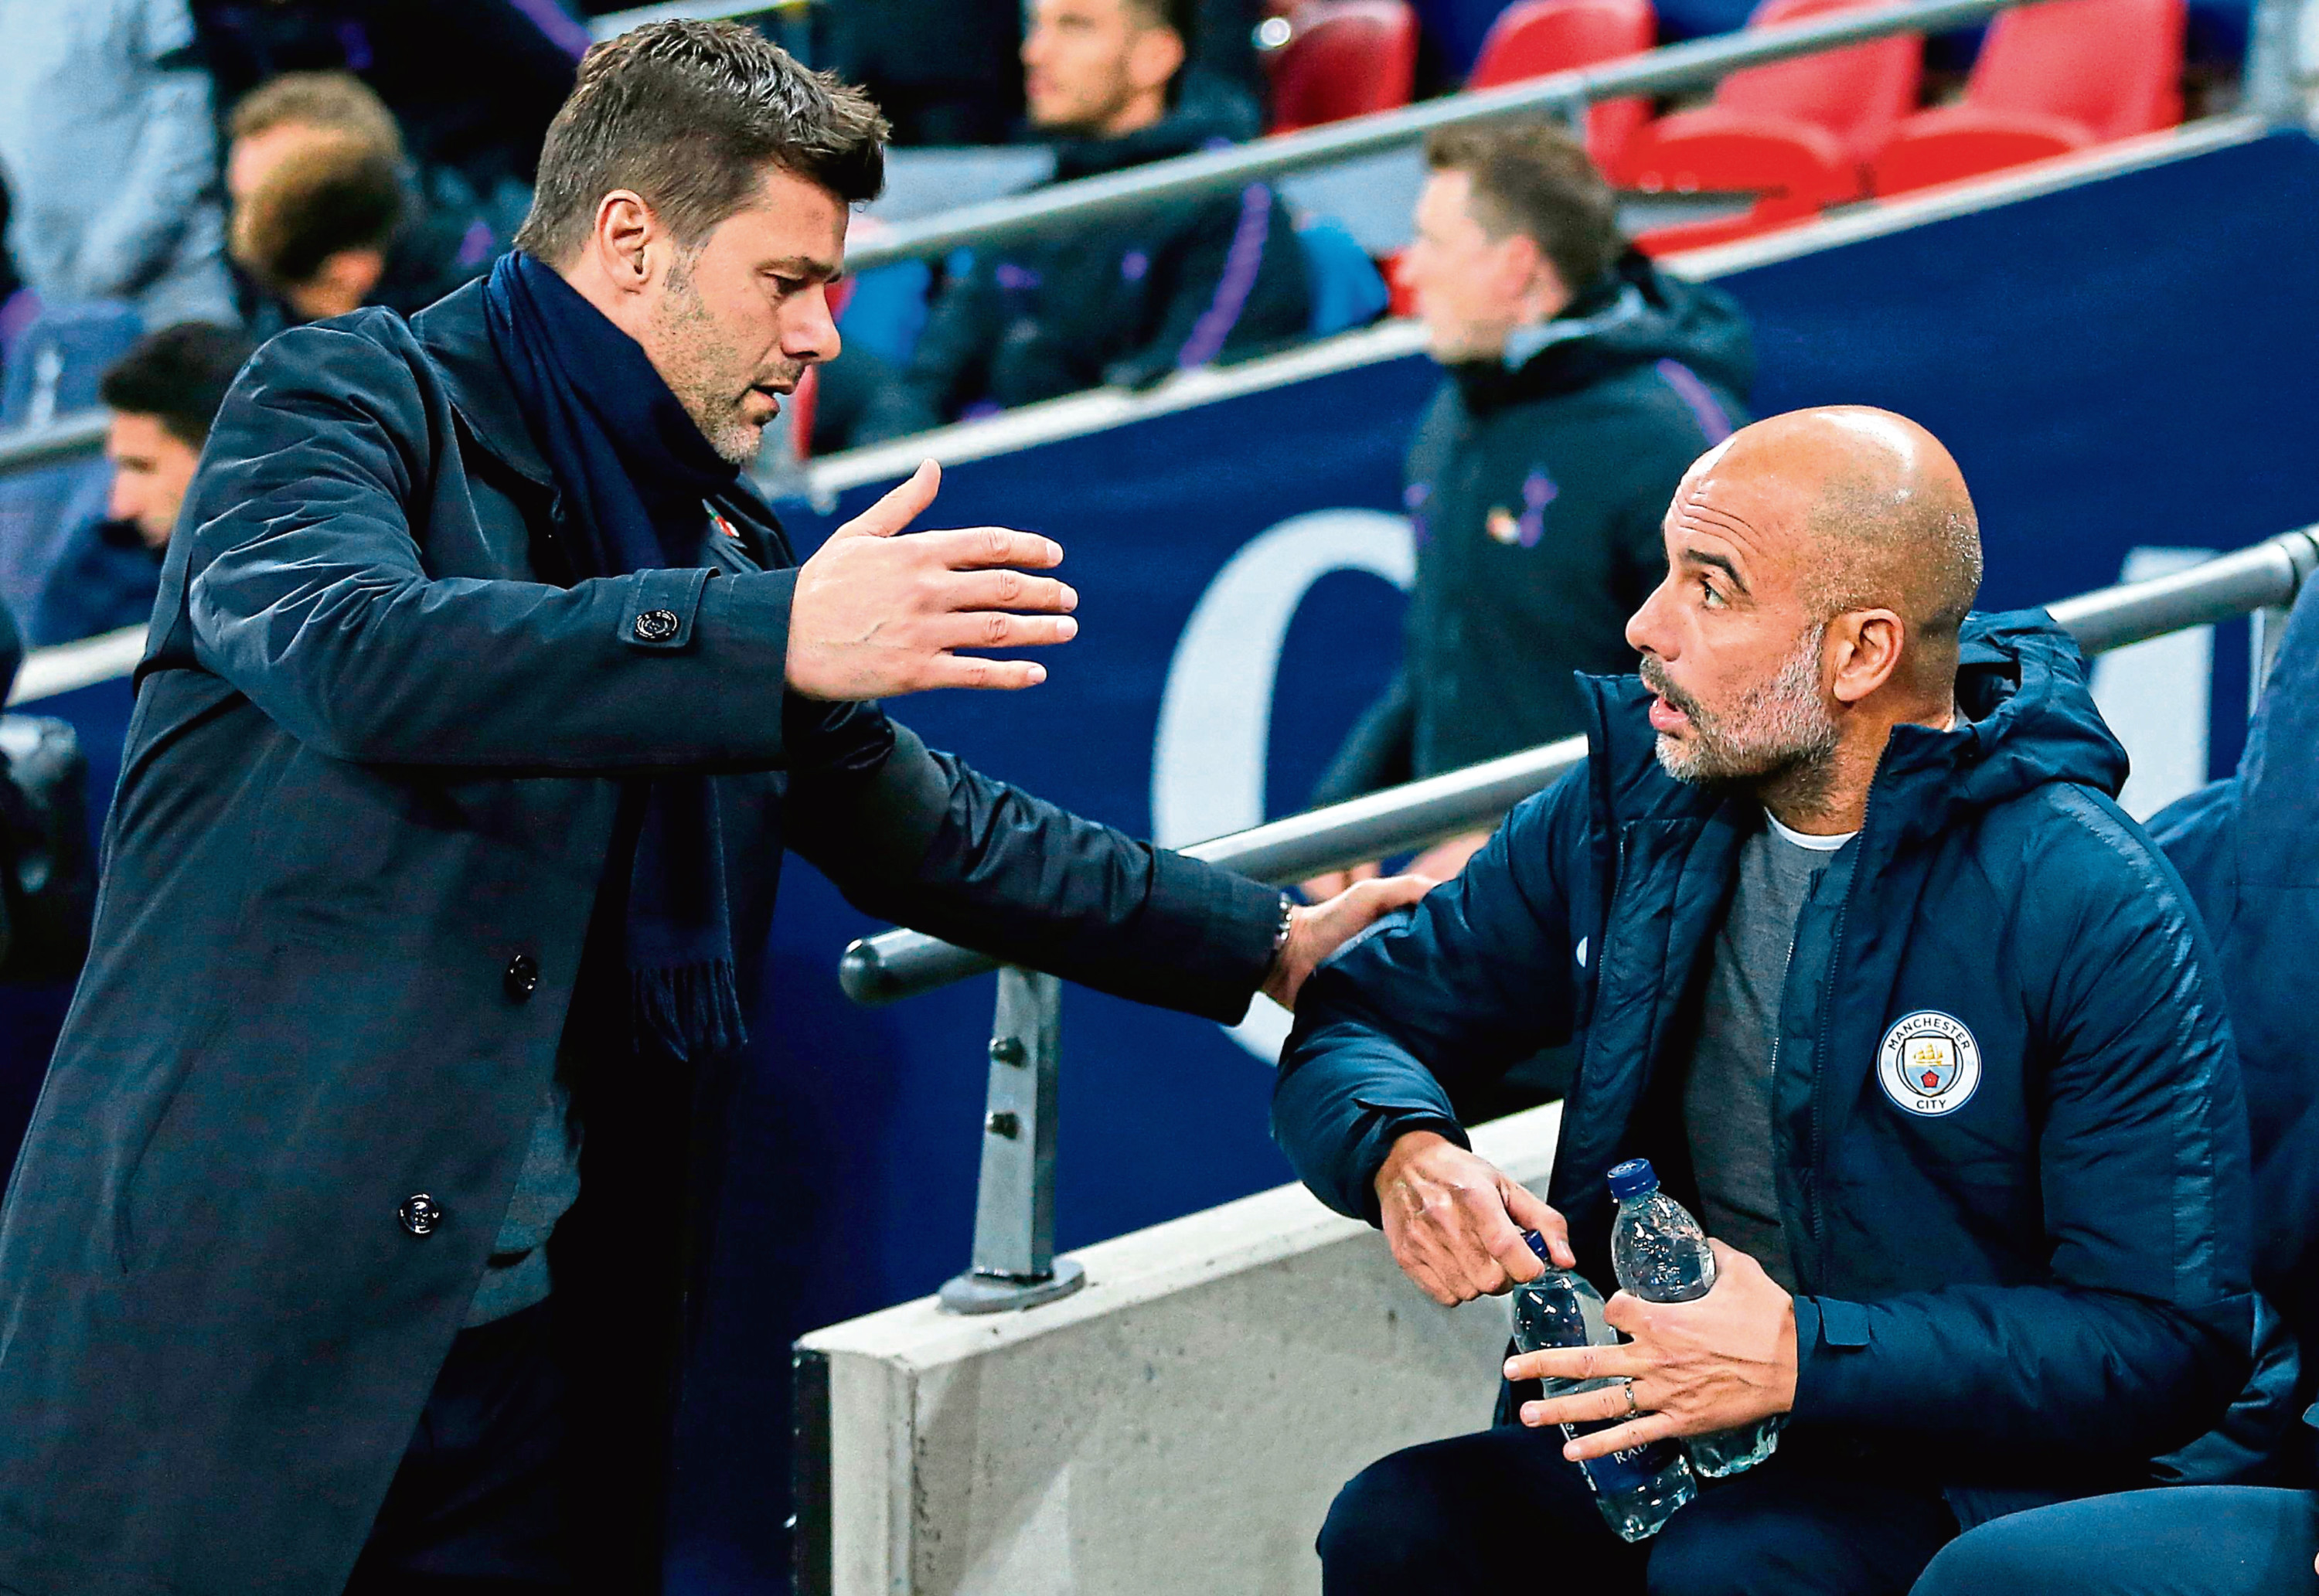 x Tottenham Hotspur's Argentinian head coach Mauricio Pochettino (L) greets Manchester City's Spanish manager Pep Guardiola ahead of the English Premier League football match between Tottenham Hotspur and Manchester City at Wembley Stadium in London, on October 29, 2018. (Photo by Ian KINGTON / IKIMAGES / AFP) / RESTRICTED TO EDITORIAL USE. No use with unauthorized audio, video, data, fixture lists, club/league logos or 'live' services. Online in-match use limited to 45 images, no video emulation. No use in betting, games or single club/league/player publications.        (Photo credit should read IAN KINGTON/AFP/Getty Images)